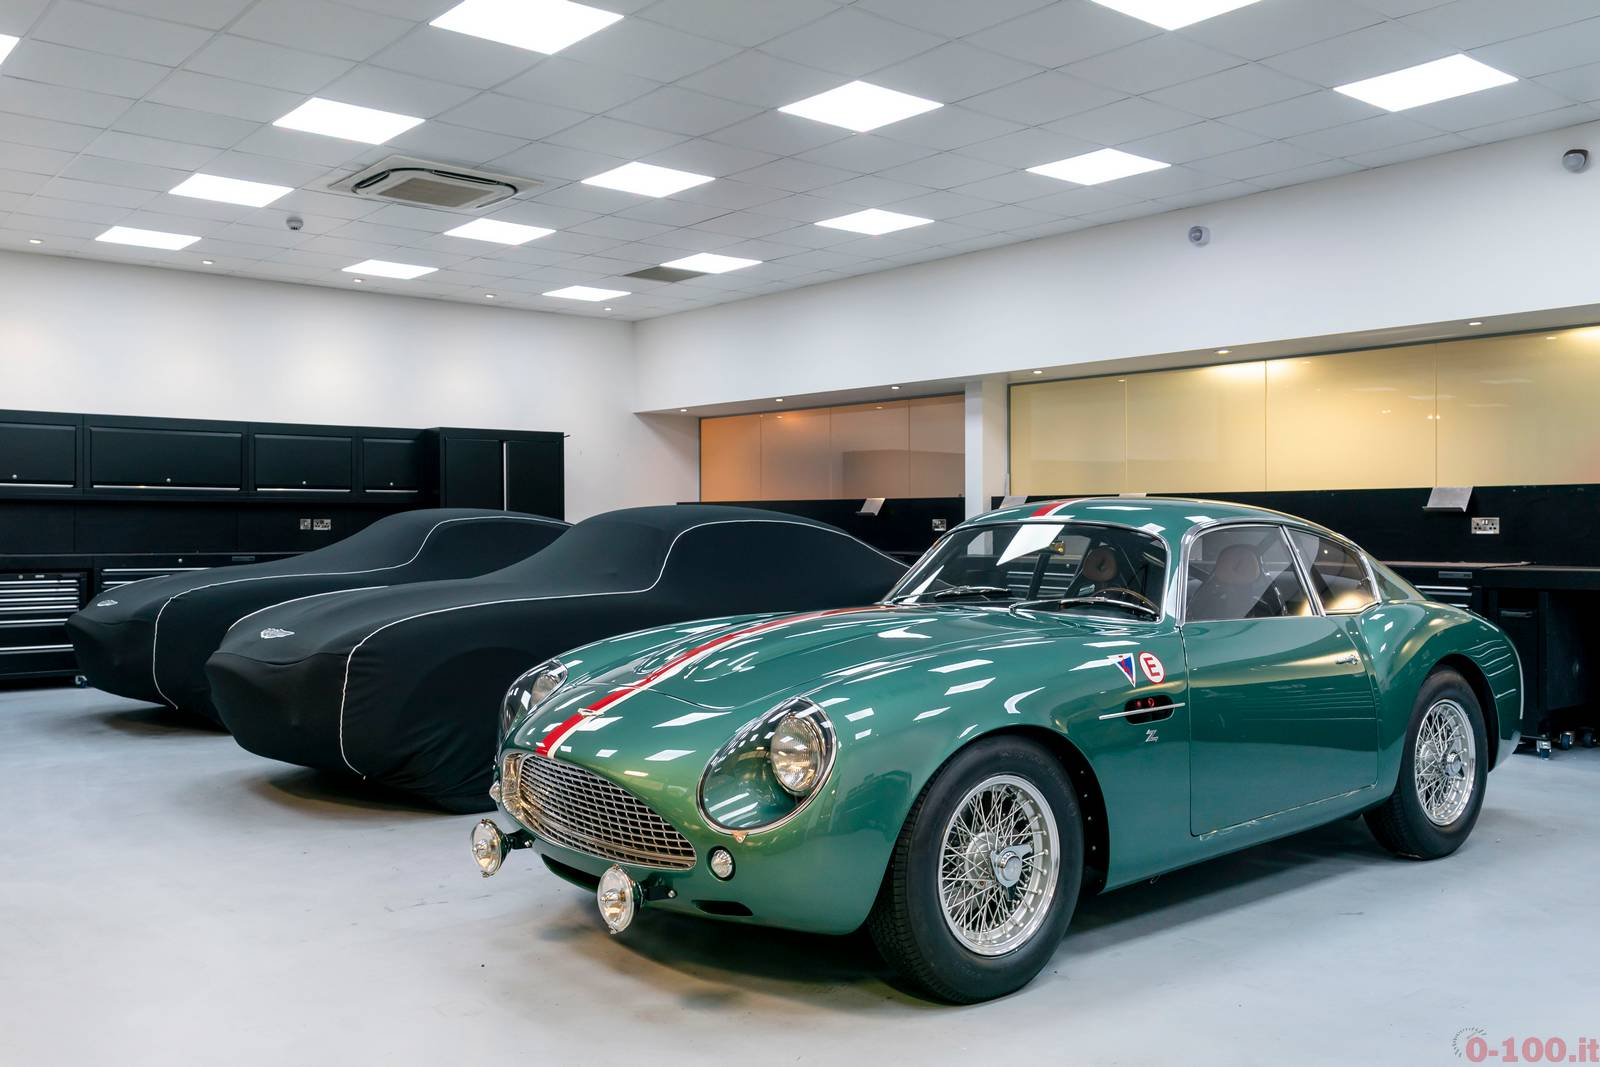 martin_db4_gtz_sanction_3_zagato_centenary_collection_0-100_22